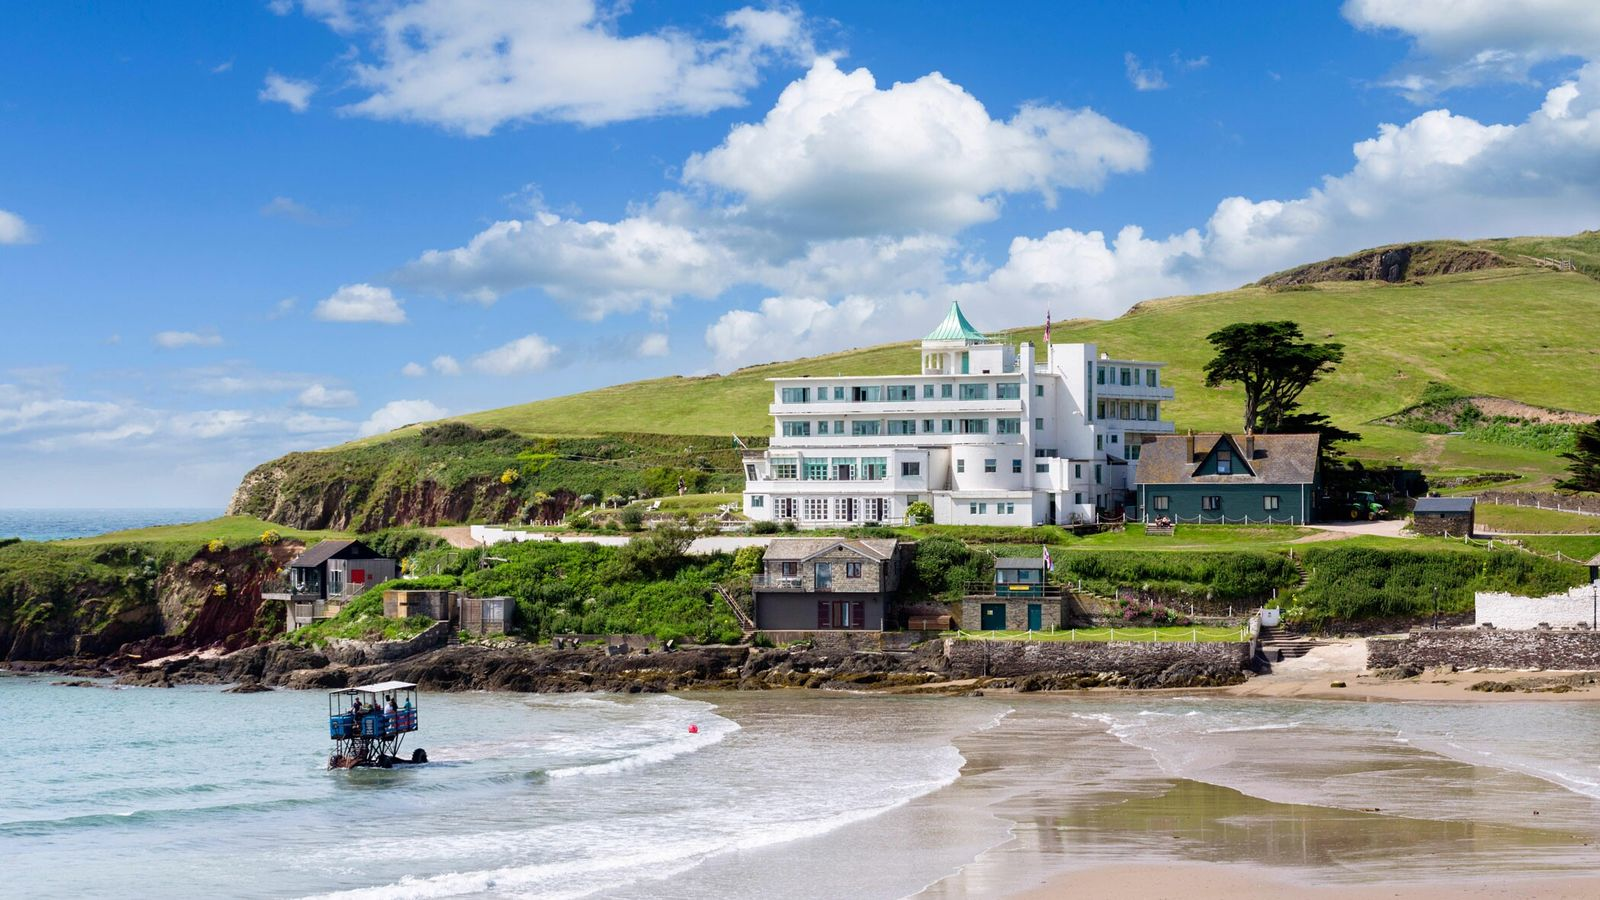 Burgh Island Hotel, Devon, offers old-world glamour and is the setting for two of Agatha Christie's ...